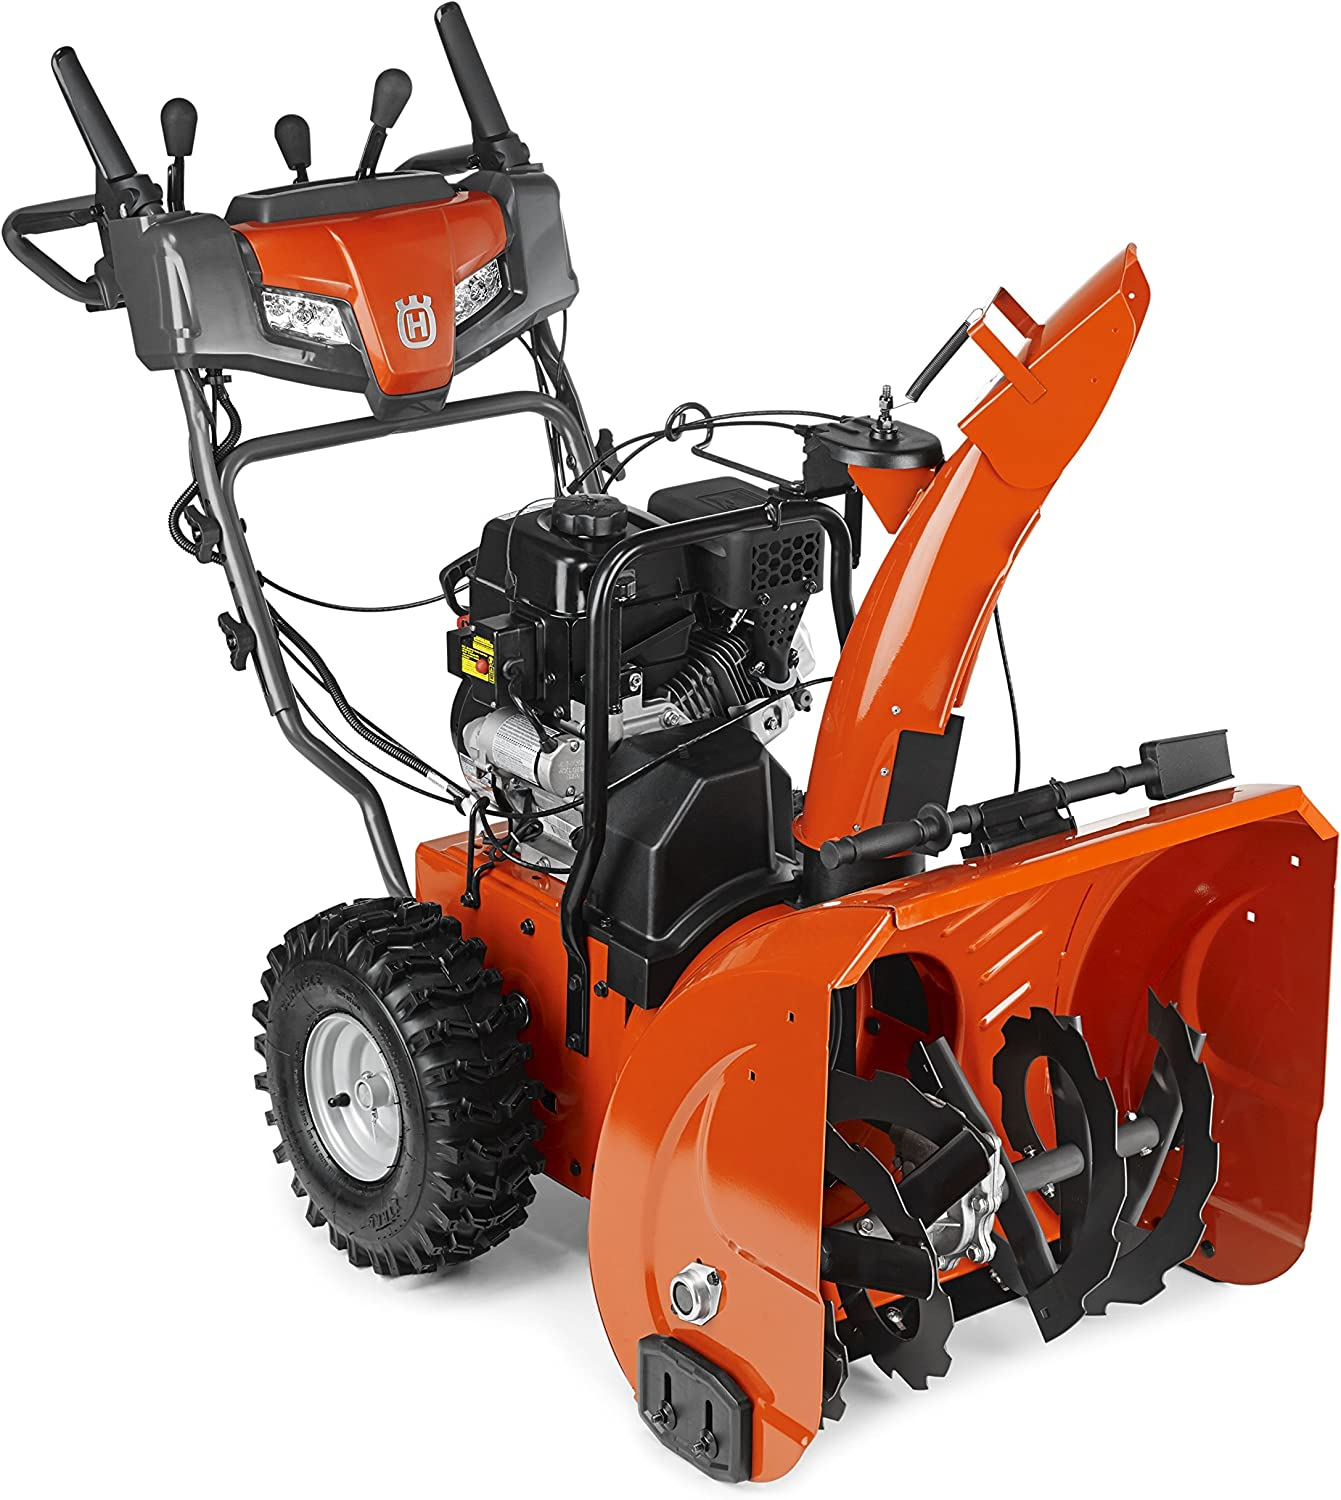 Husqvarna Two-Stage Electric Start Snow Blower